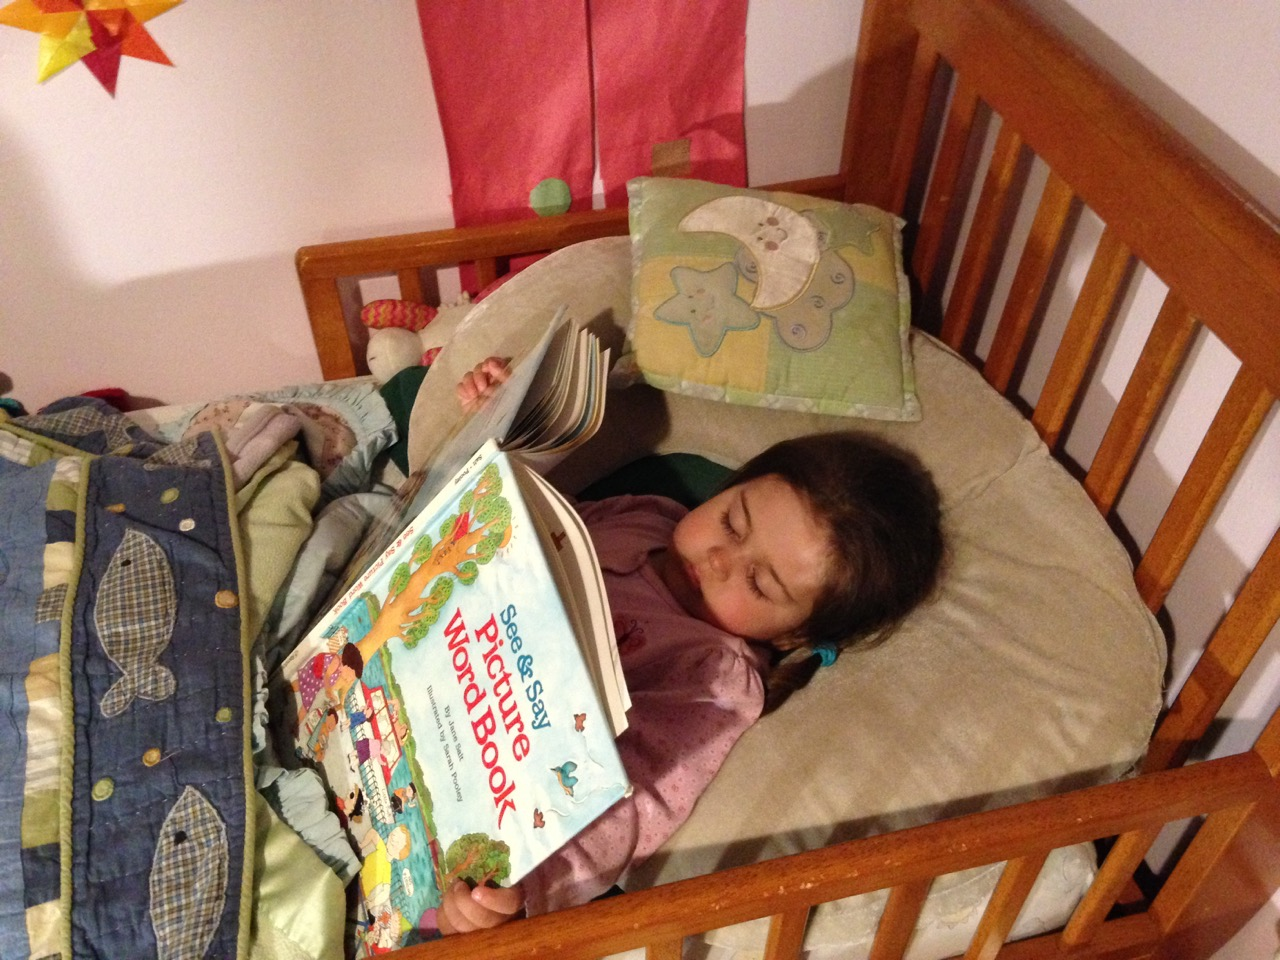 Lucy fell asleep while reading in bed.